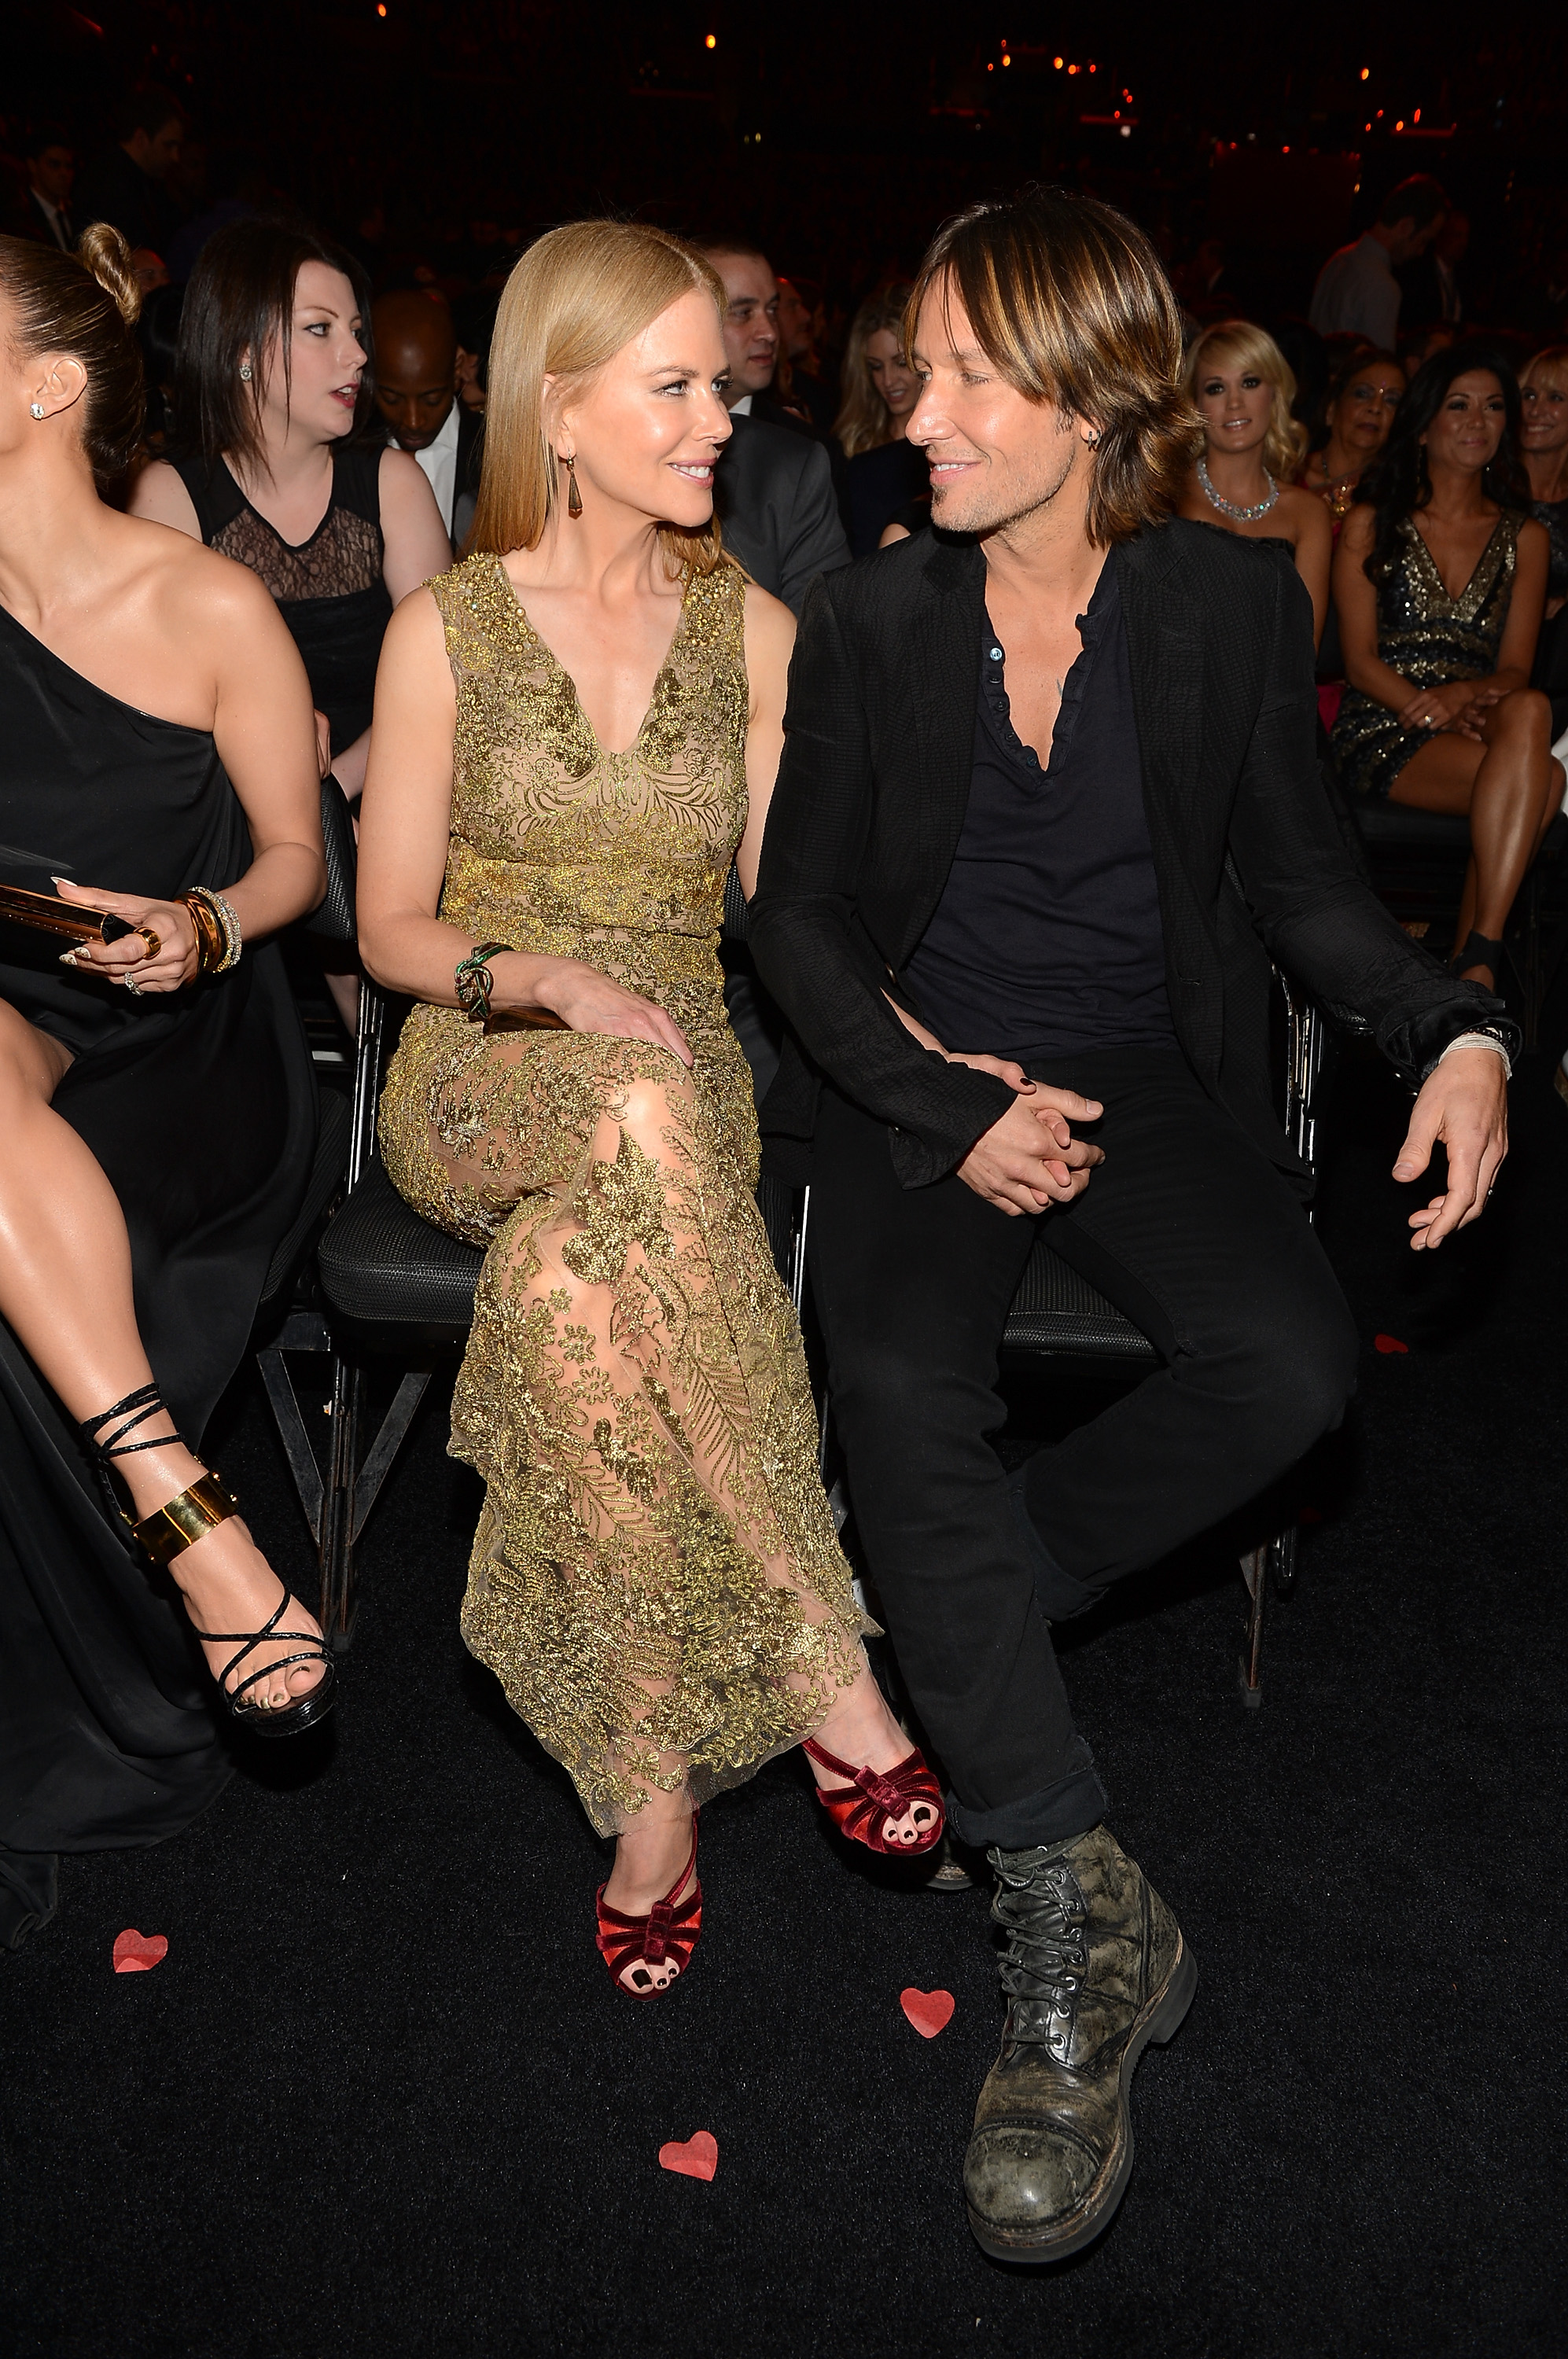 Keith Urban and Nicole Kidman shared a sweet look during the show.